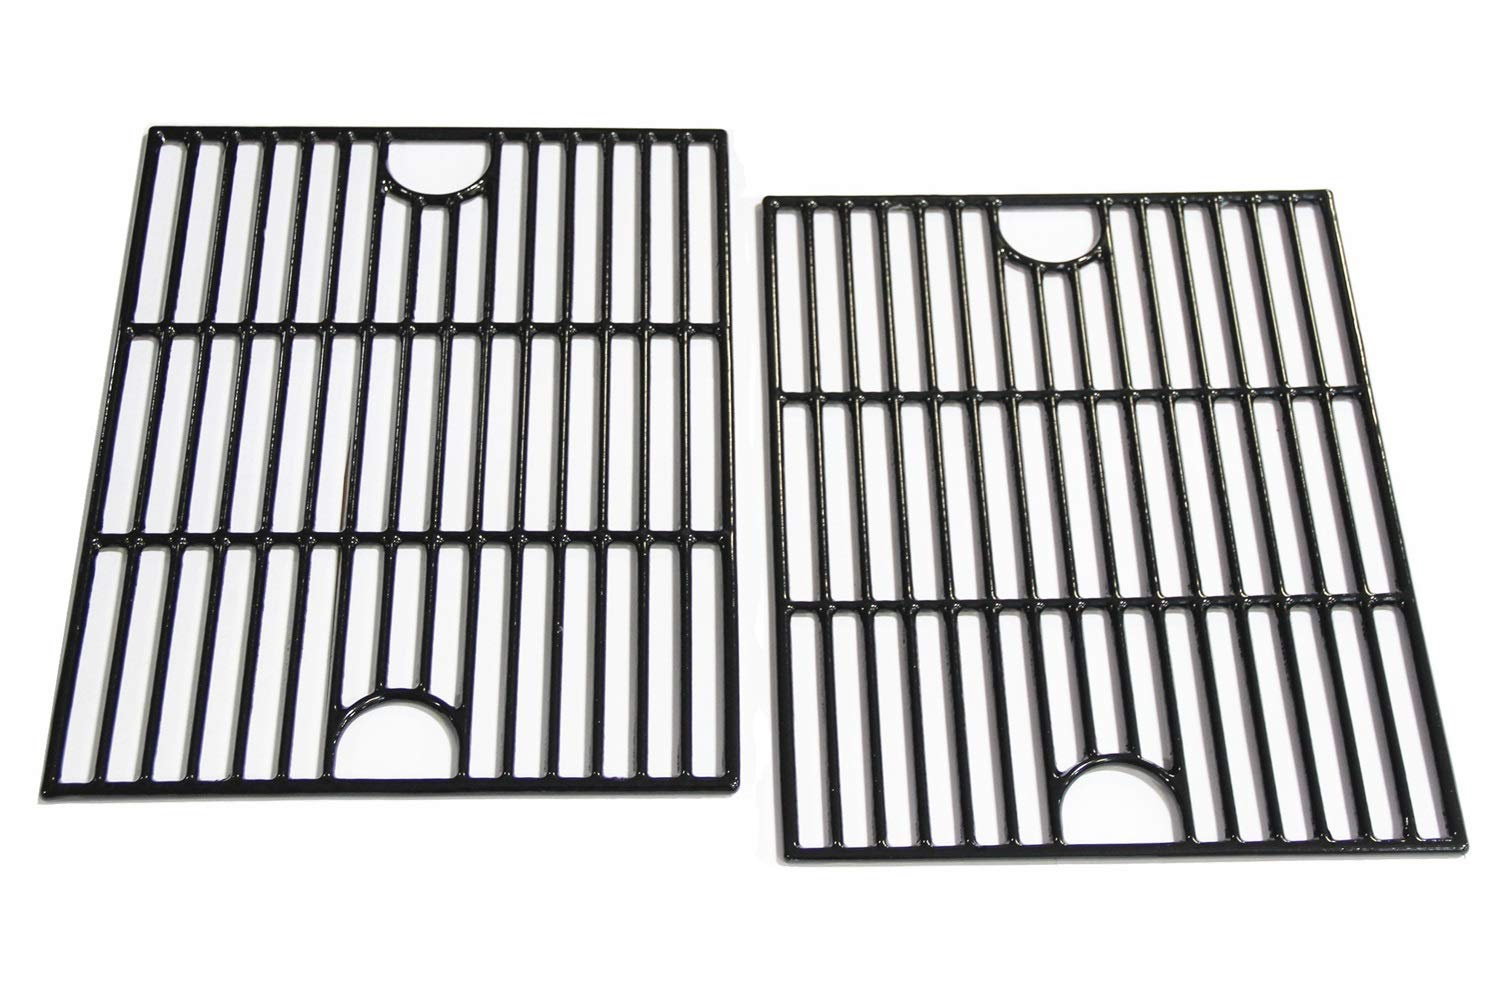 Hongso 17 inch Porcelain Coated Cast Iron Cooking Grids Grates Replacement for Nexgrill 720-0830H, Kenmore 41516106210 415.16106210 Gas Grill, Set of 2 (PCA192) by Hongso